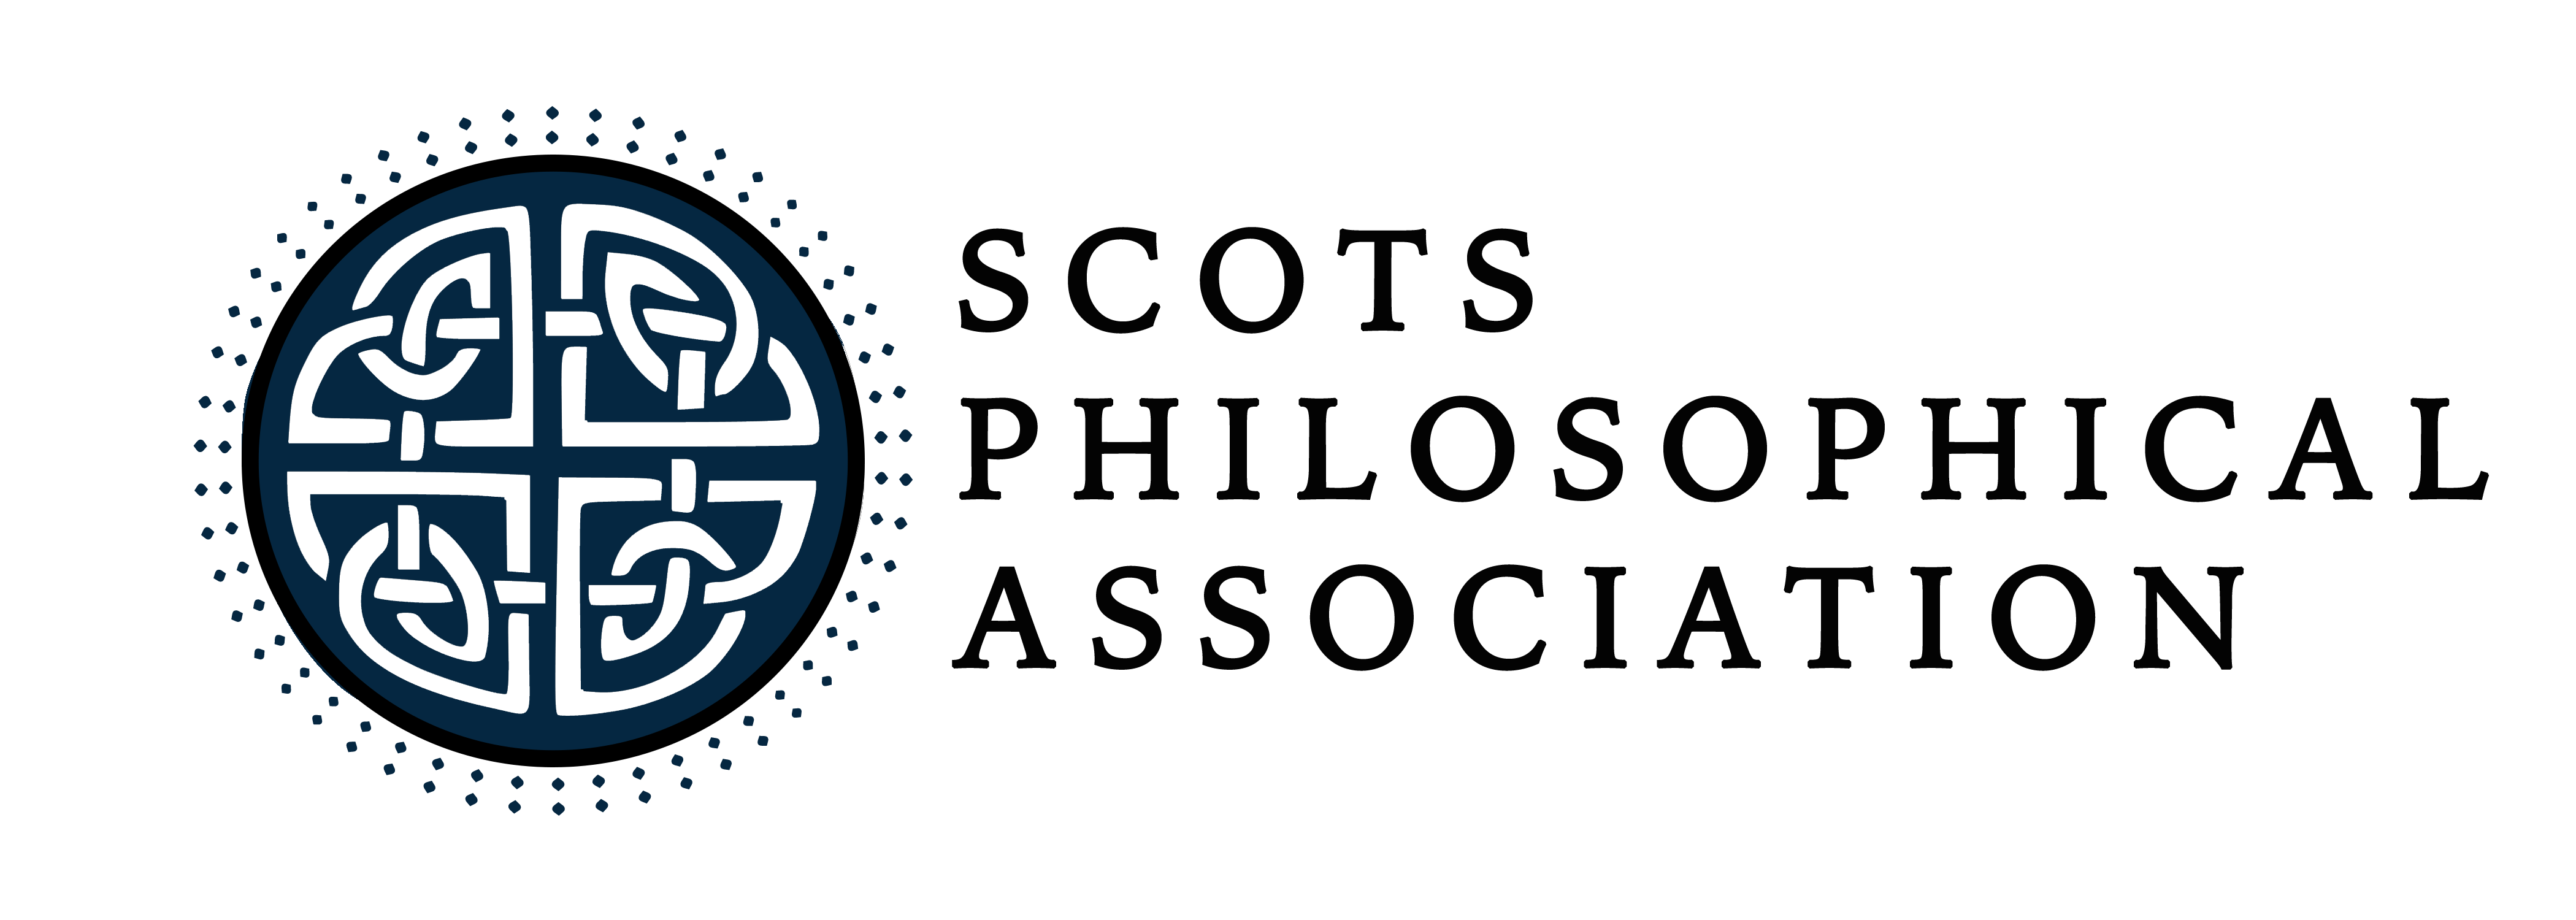 Logo: a round green seal with a complex white celtic knot, accompanied by text that reads 'Scots philosophical association'